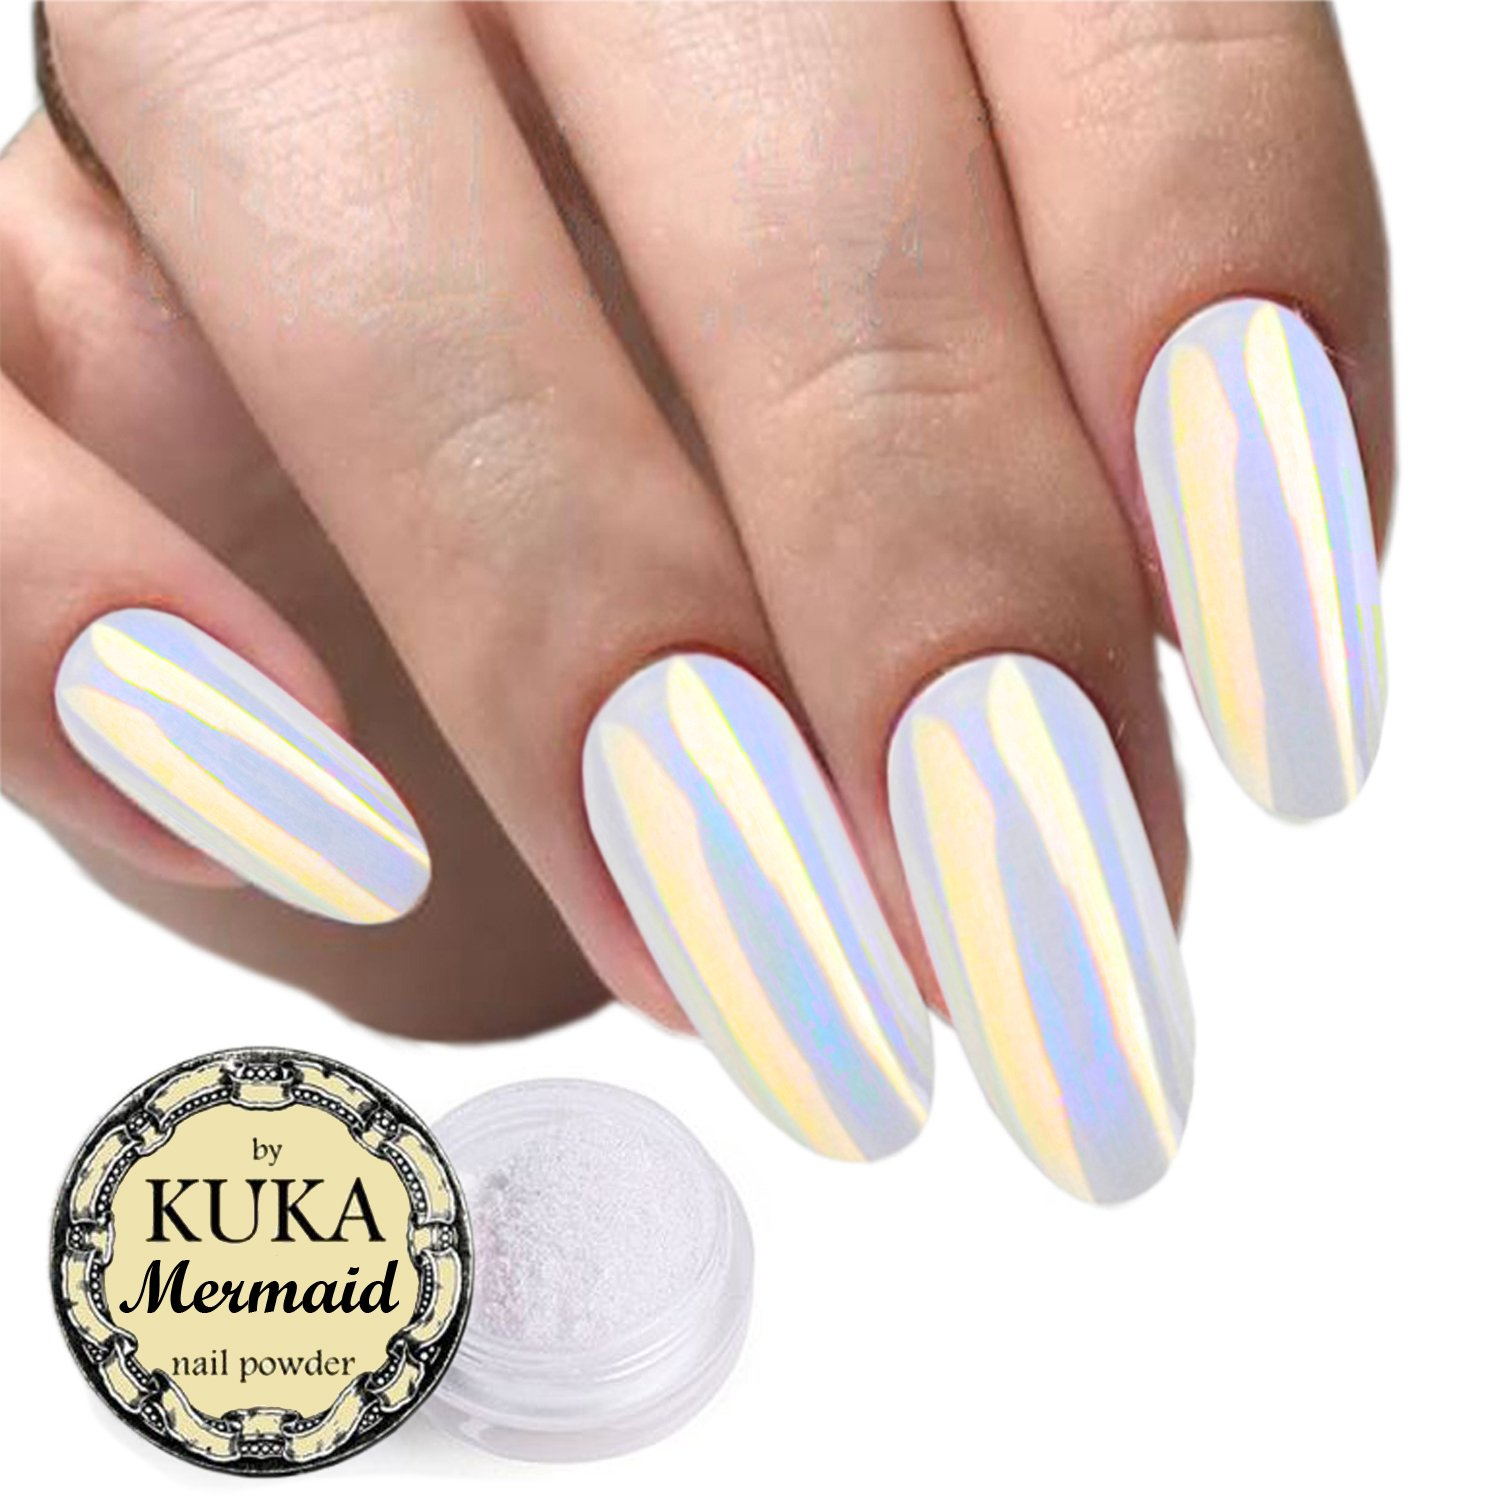 Shell Pearl Effect Powder Nail Art Accessories Chameleon Mermaid Mirror Chrome Glitter Shiny Iridescent Ceramic Neon Nails 5 colours (Aquamarine) Chocokyka